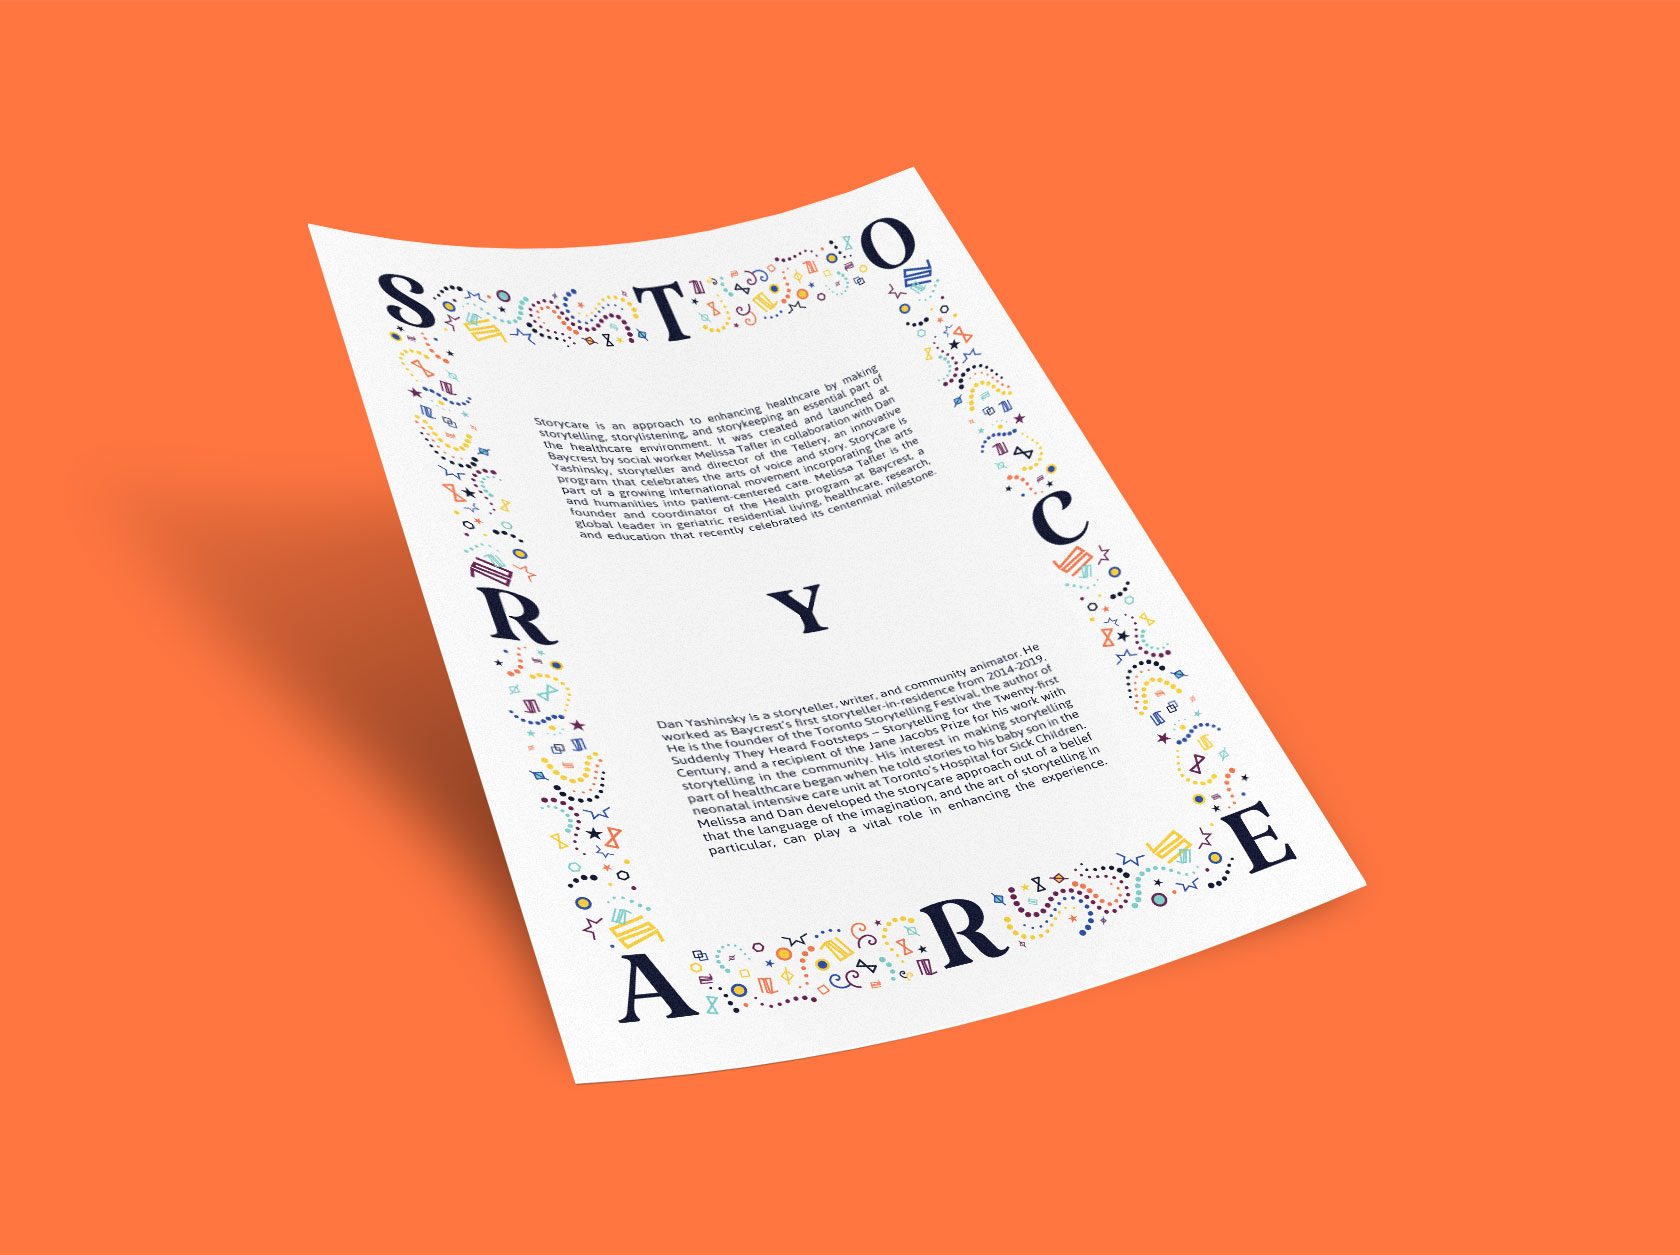 Storycare Advertising Design by Furia